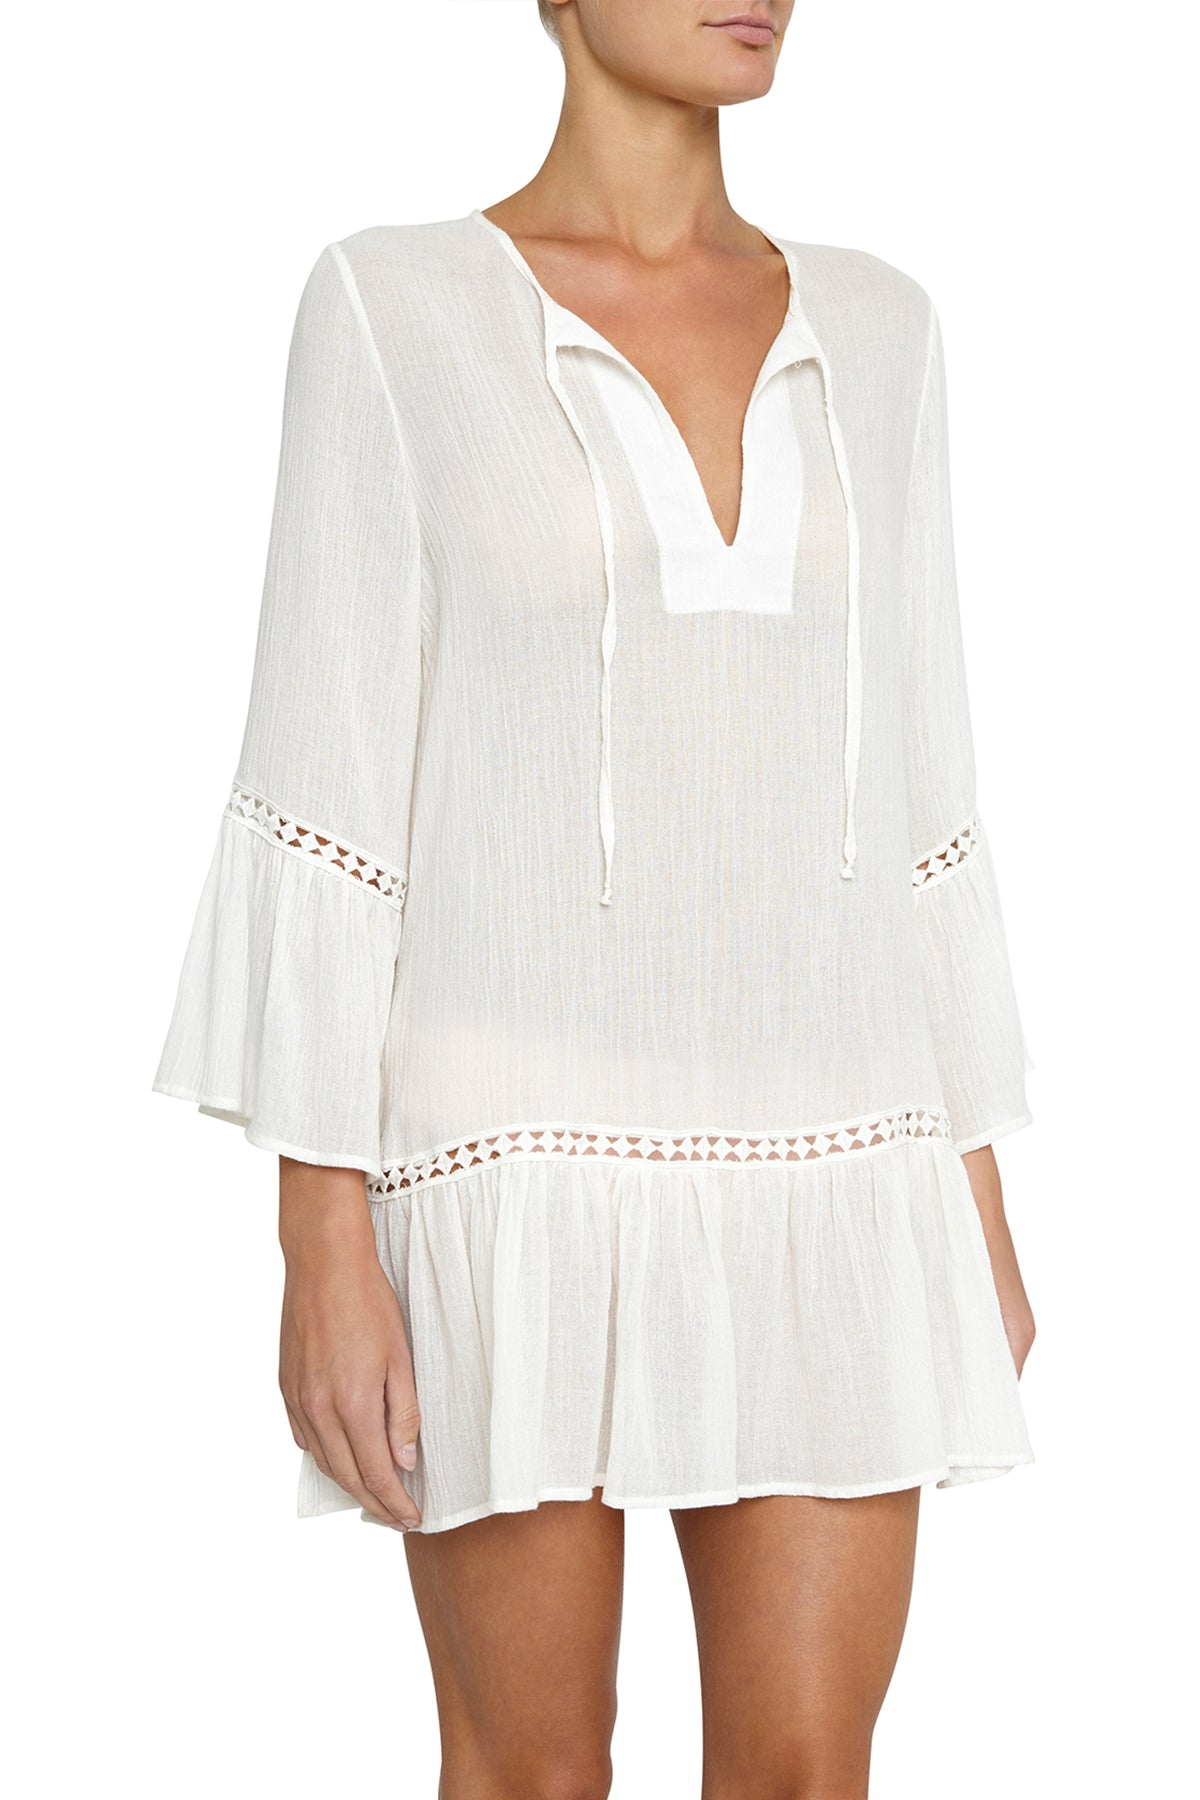 Eberjey Summer of Love Tessa Sheer Tunic Cover-Up